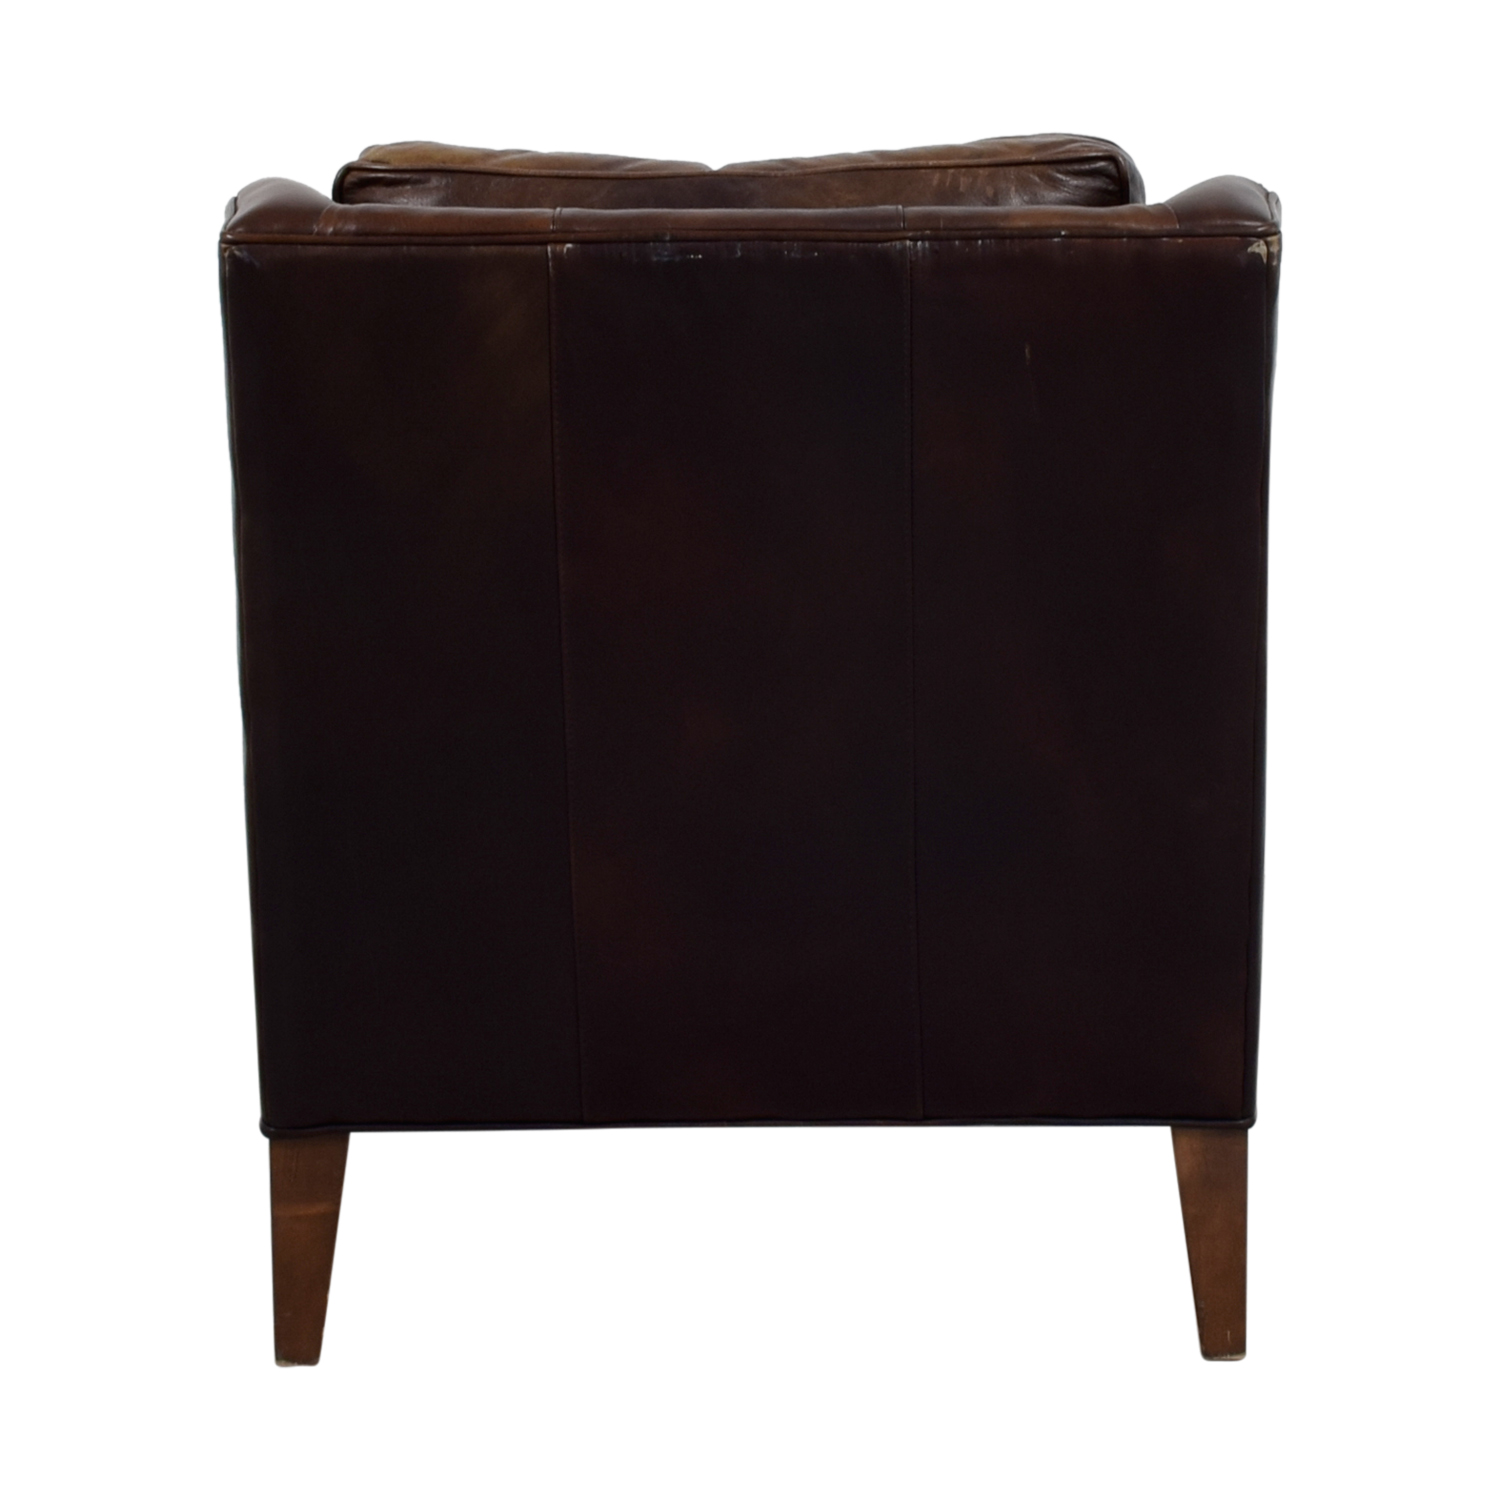 leather dining chairs pottery barn chair covers for sale uk 62 off brown armchair